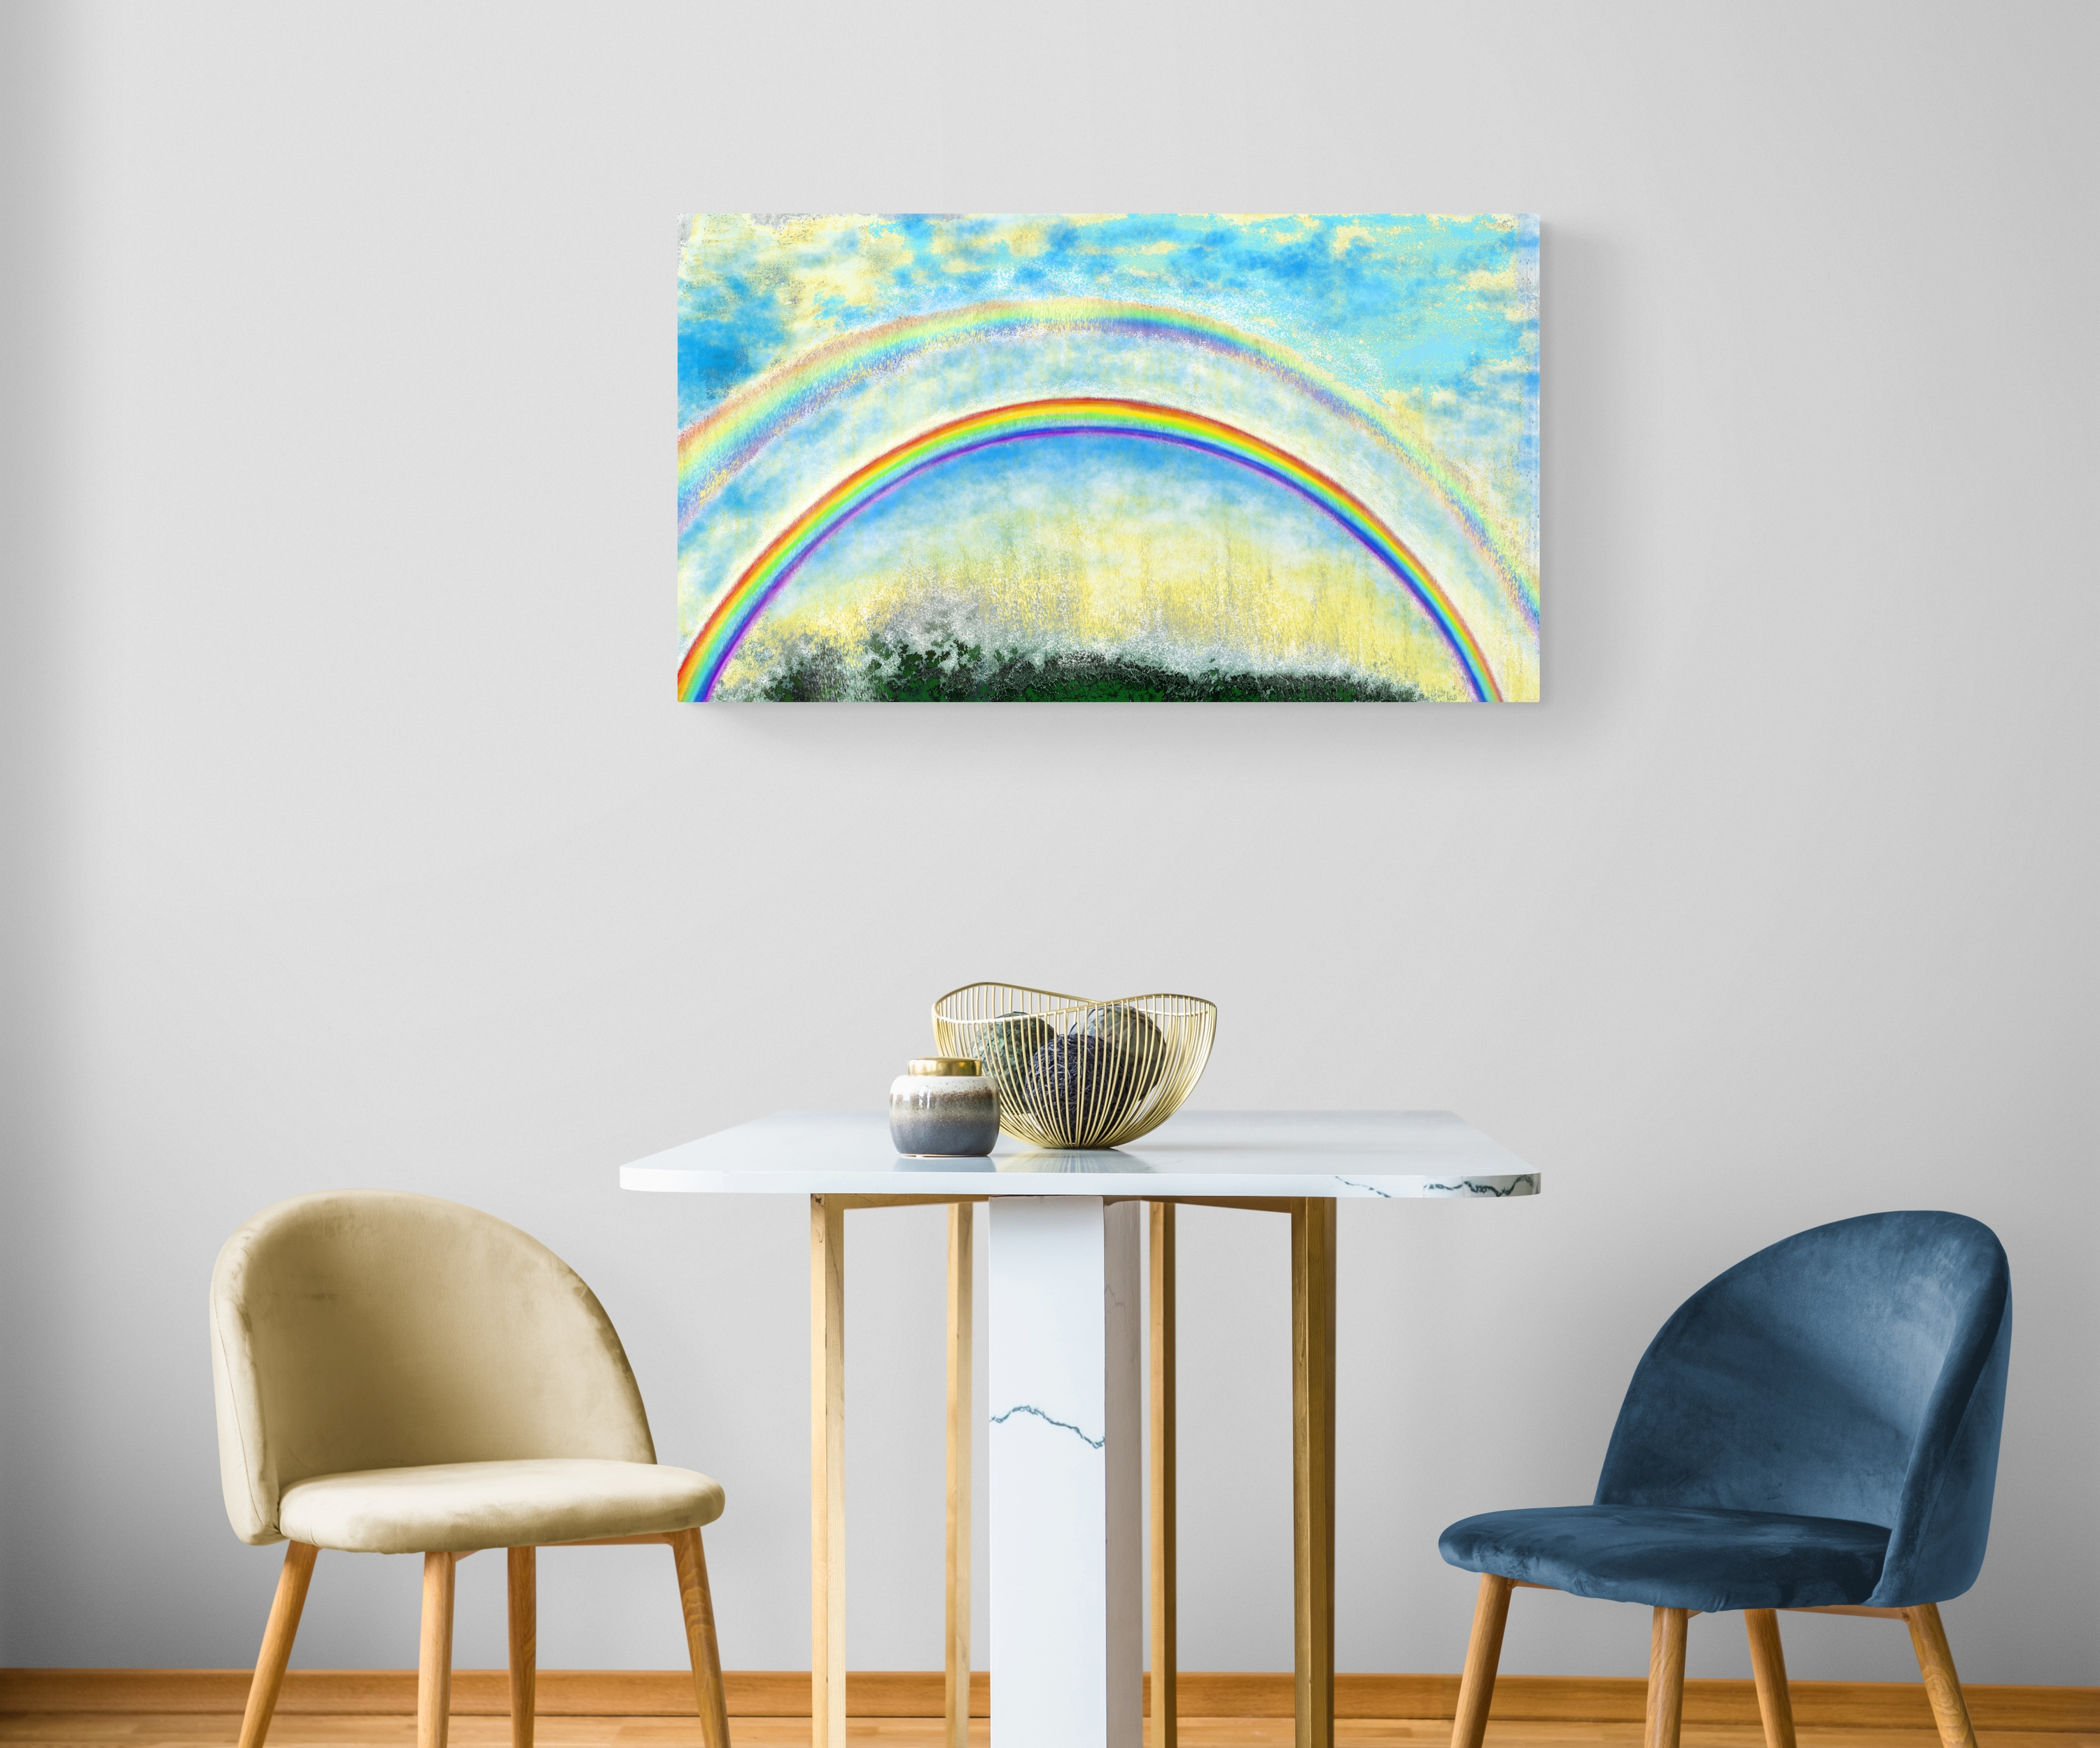 Rainbow Abstract Art - Dazzling art print inspired by a double rainbow seen in the mountains of Occitanie, France. artist: Anne Turlais - Limited edition of 300. Printed on Dibond.